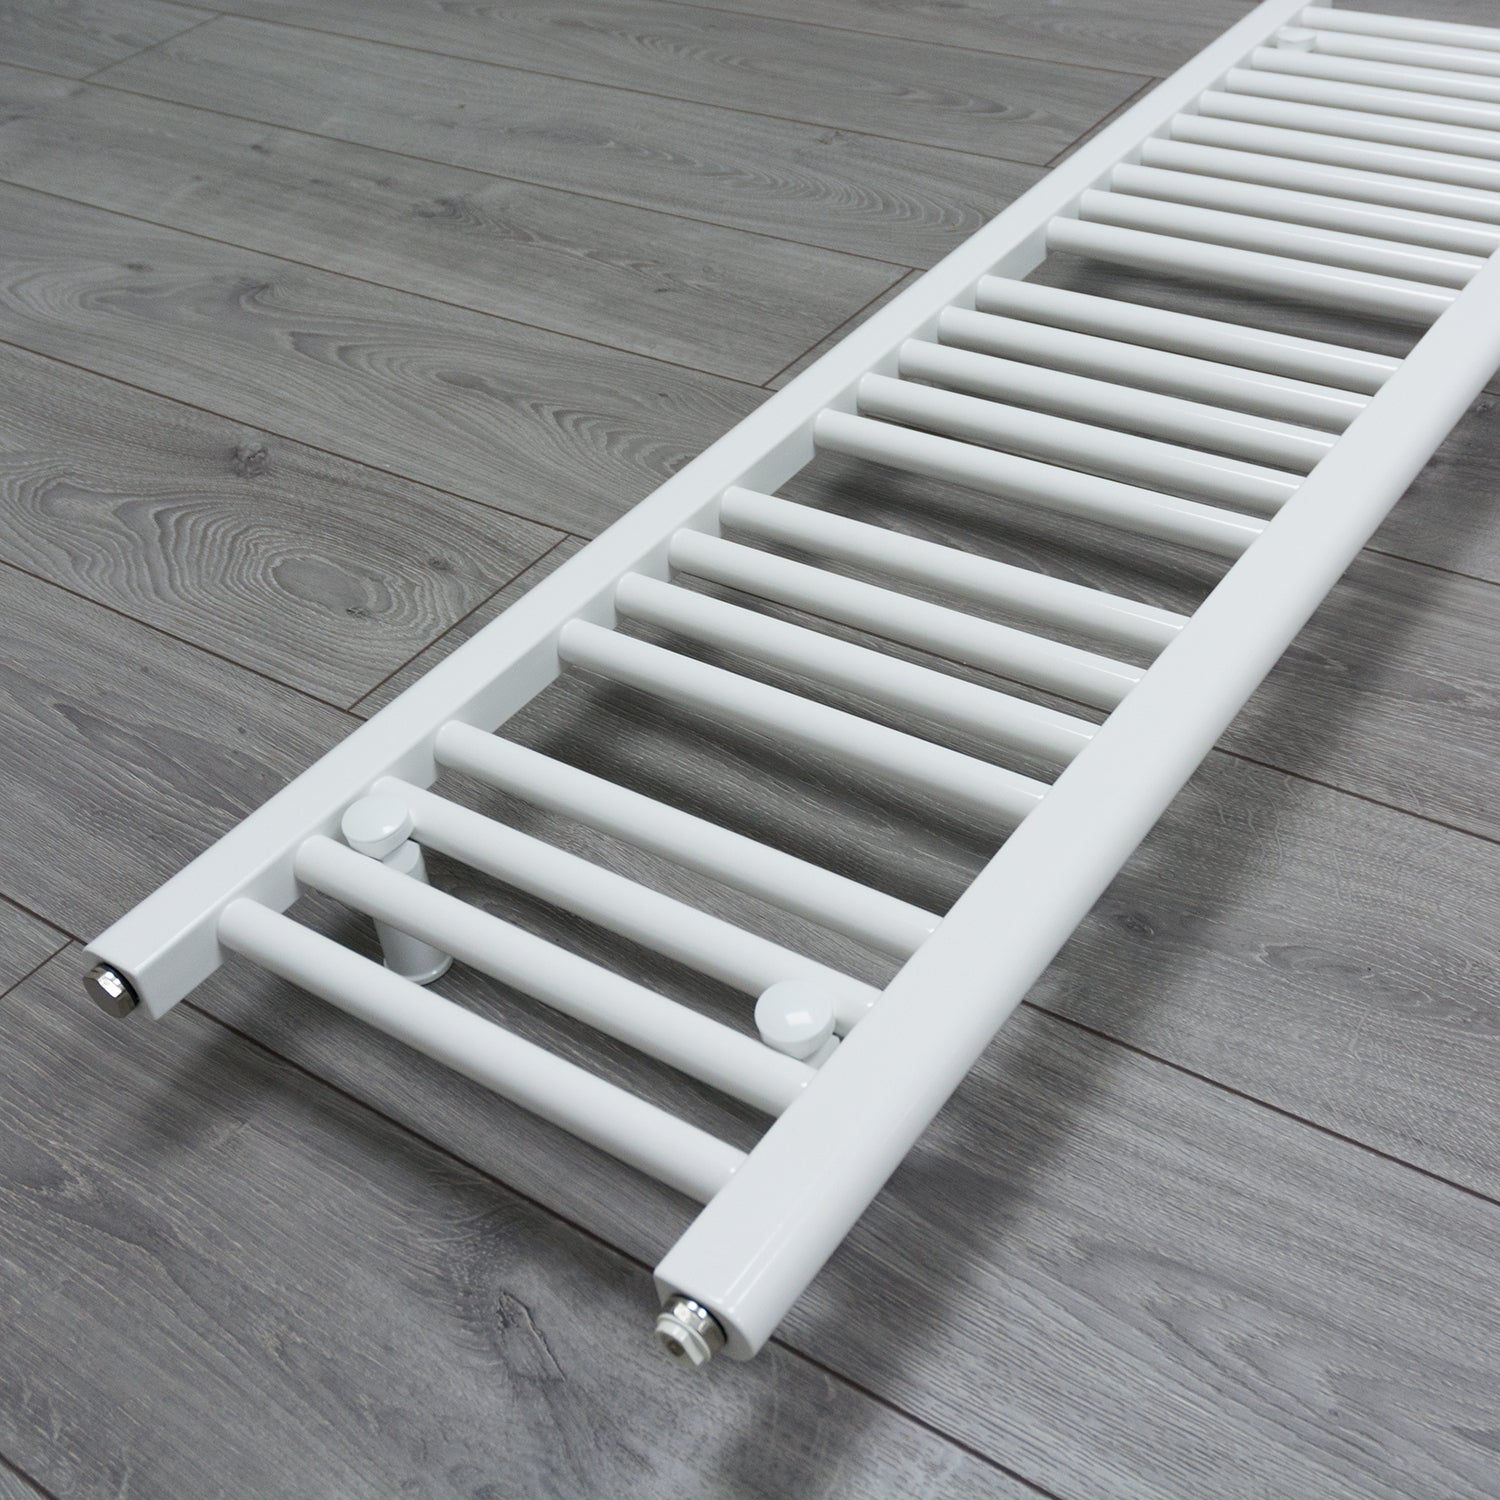 350mm x 600mm White Heated Towel Rail Radiator Close Up Image